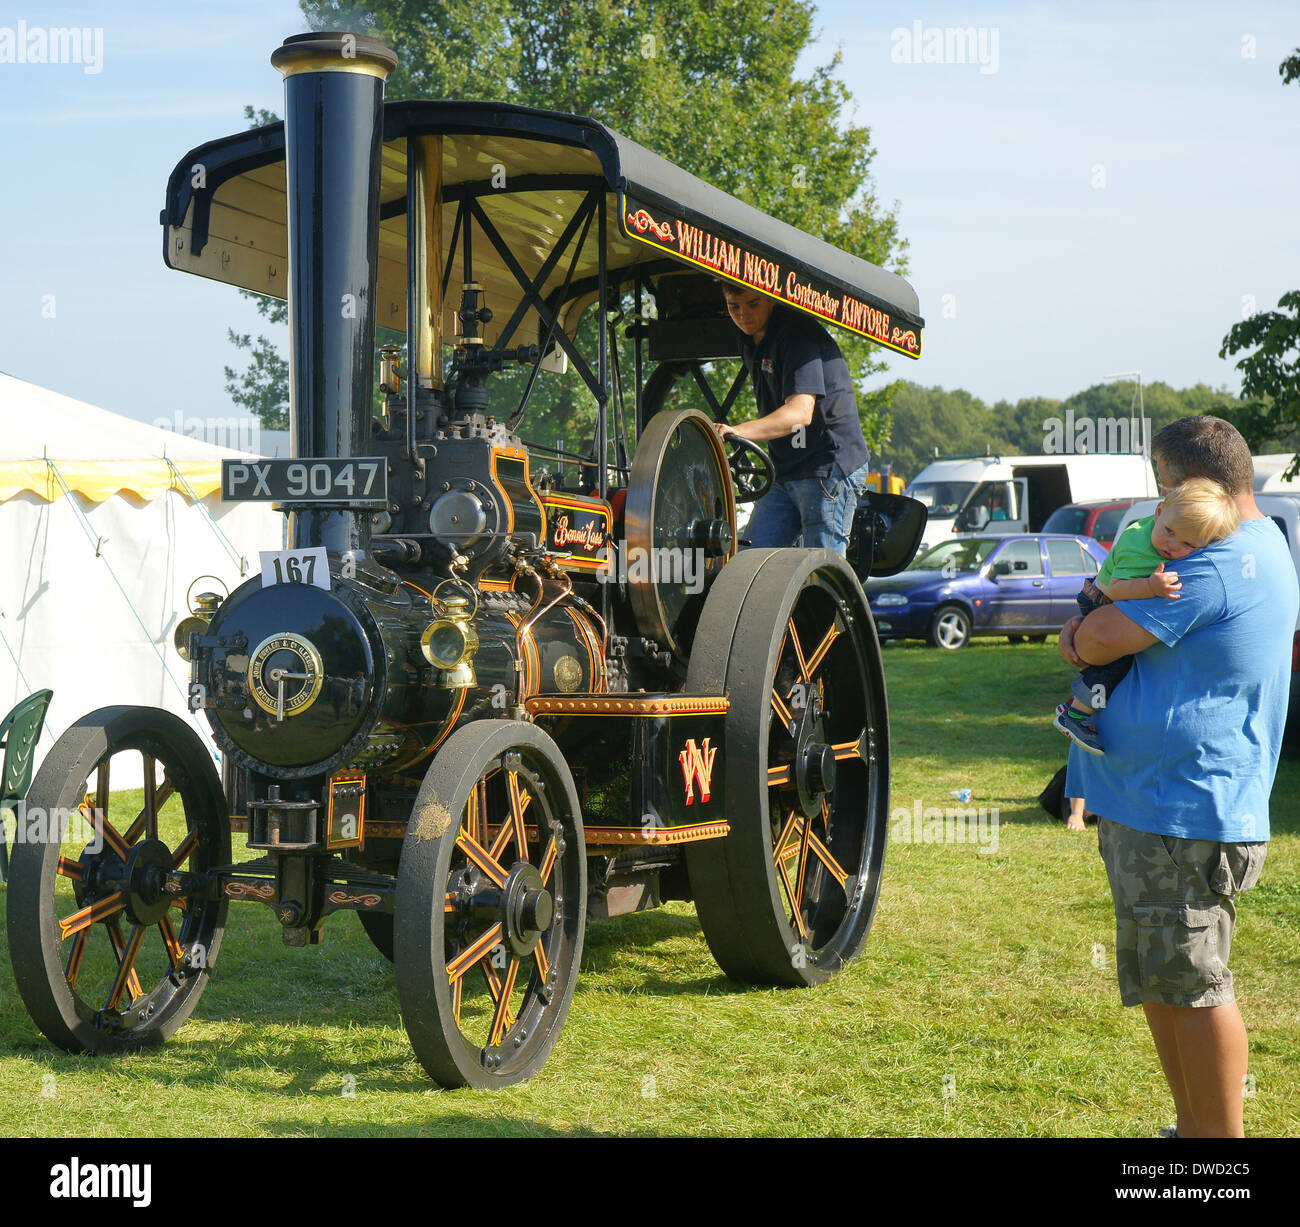 1928 PX9047 John Fowler class T3B steam tractor 17470 Bonnie Lass William Nicol Kintore - Stock Image